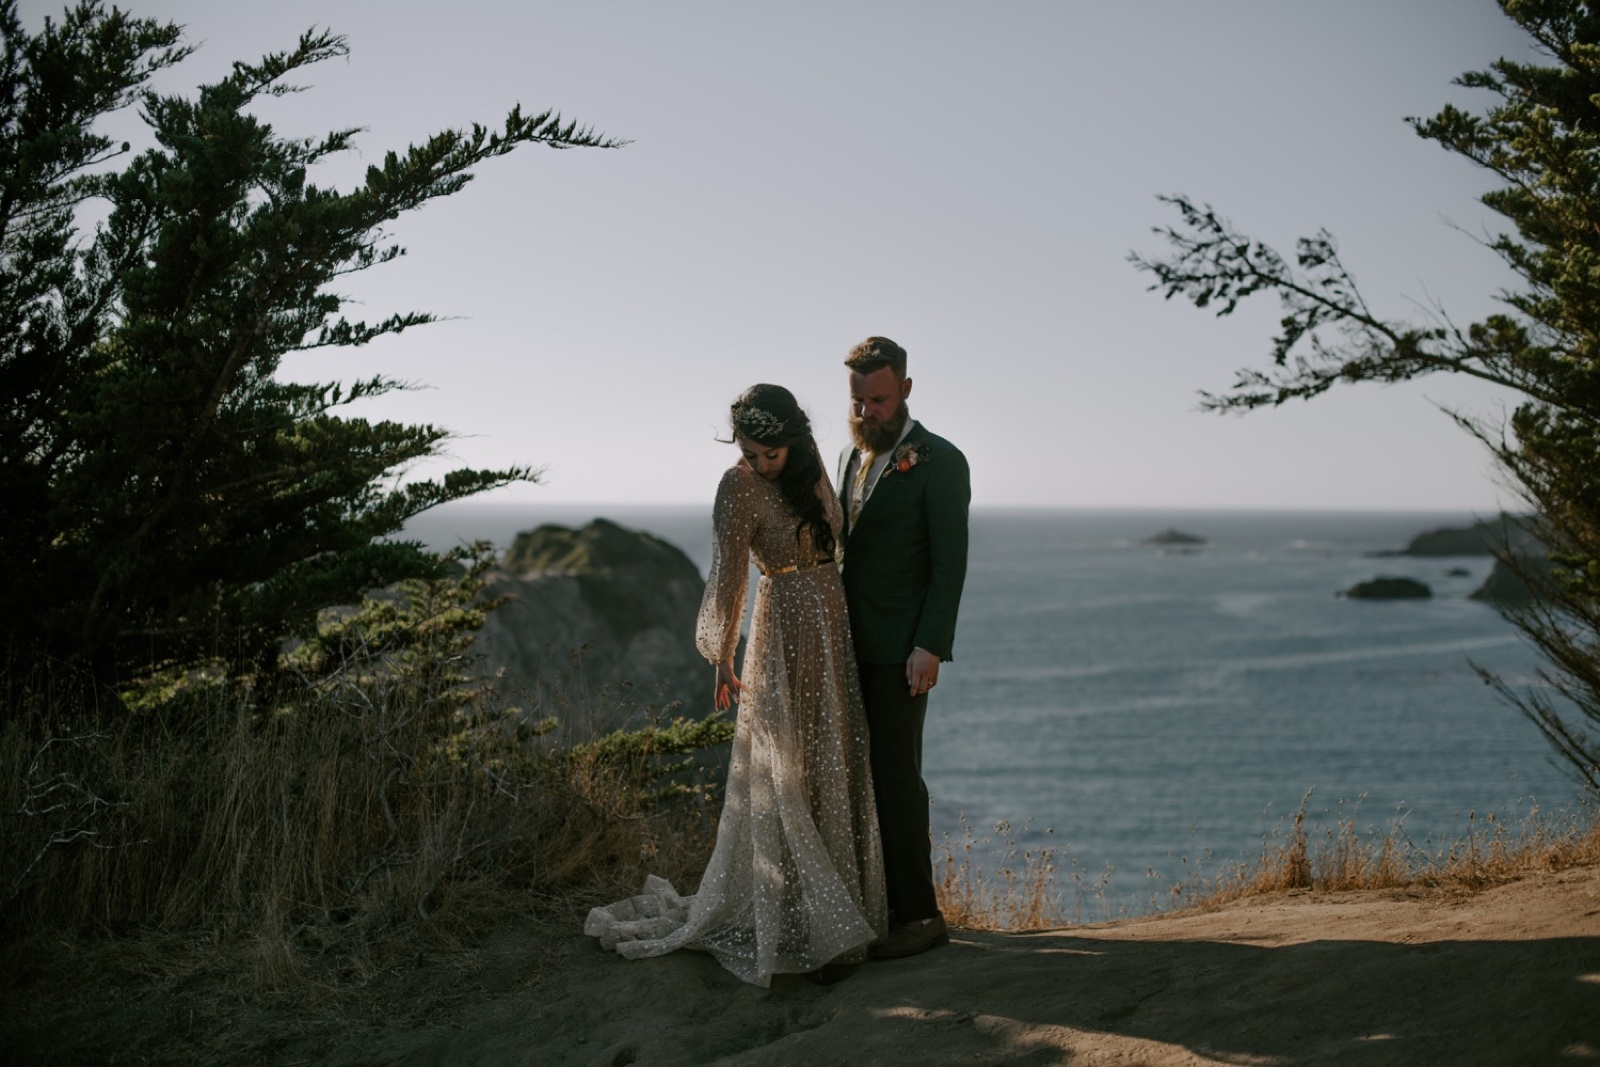 Mendocino_Wedding_Cuffeys_Cove104.JPG